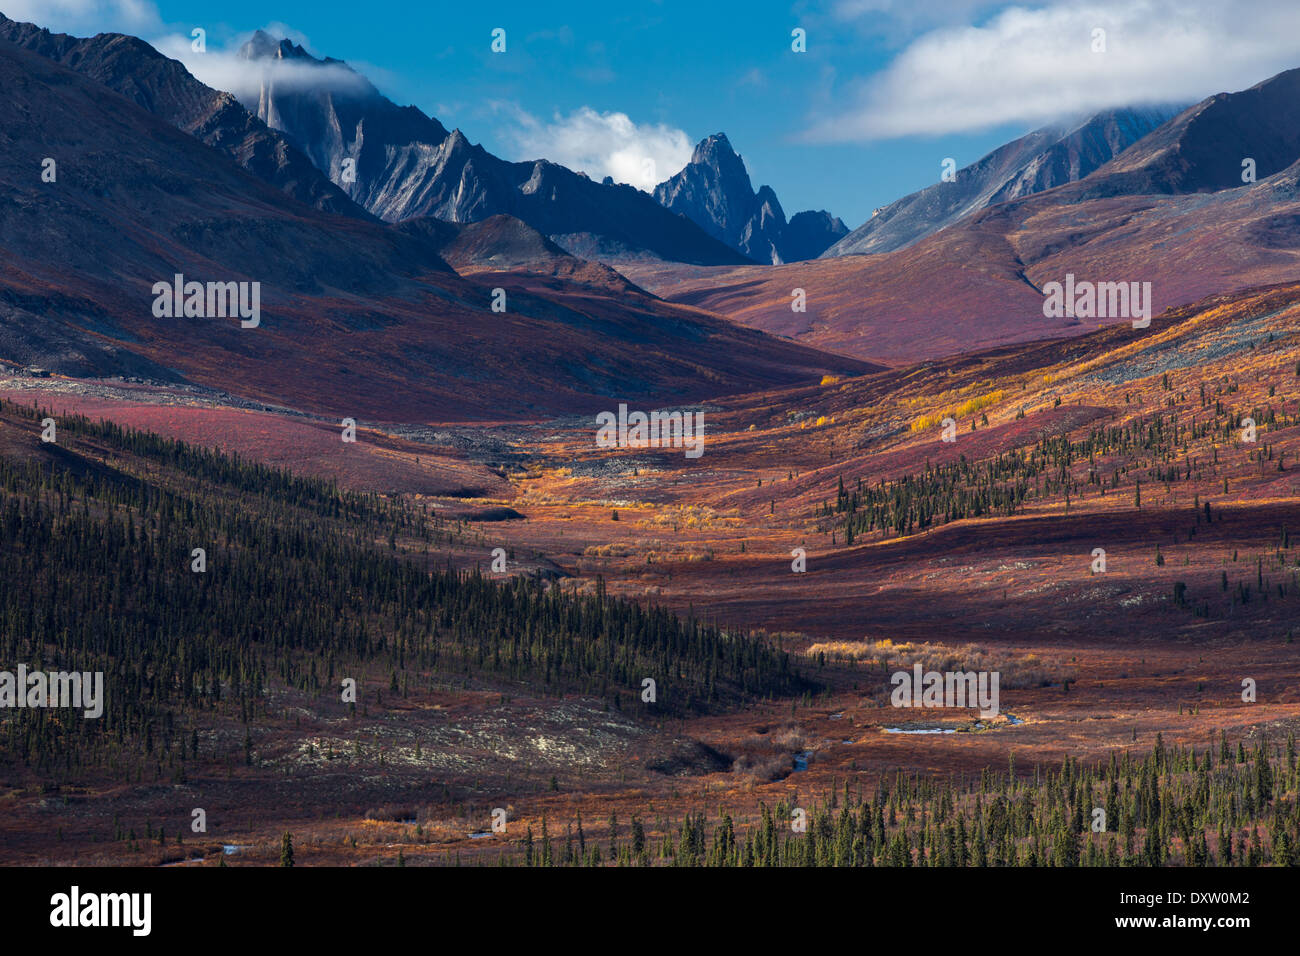 Tombstone Pass and the upper valley of the North Klondike River in autumn, Tombstone Territorial Park, Yukon Territories, Canada - Stock Image